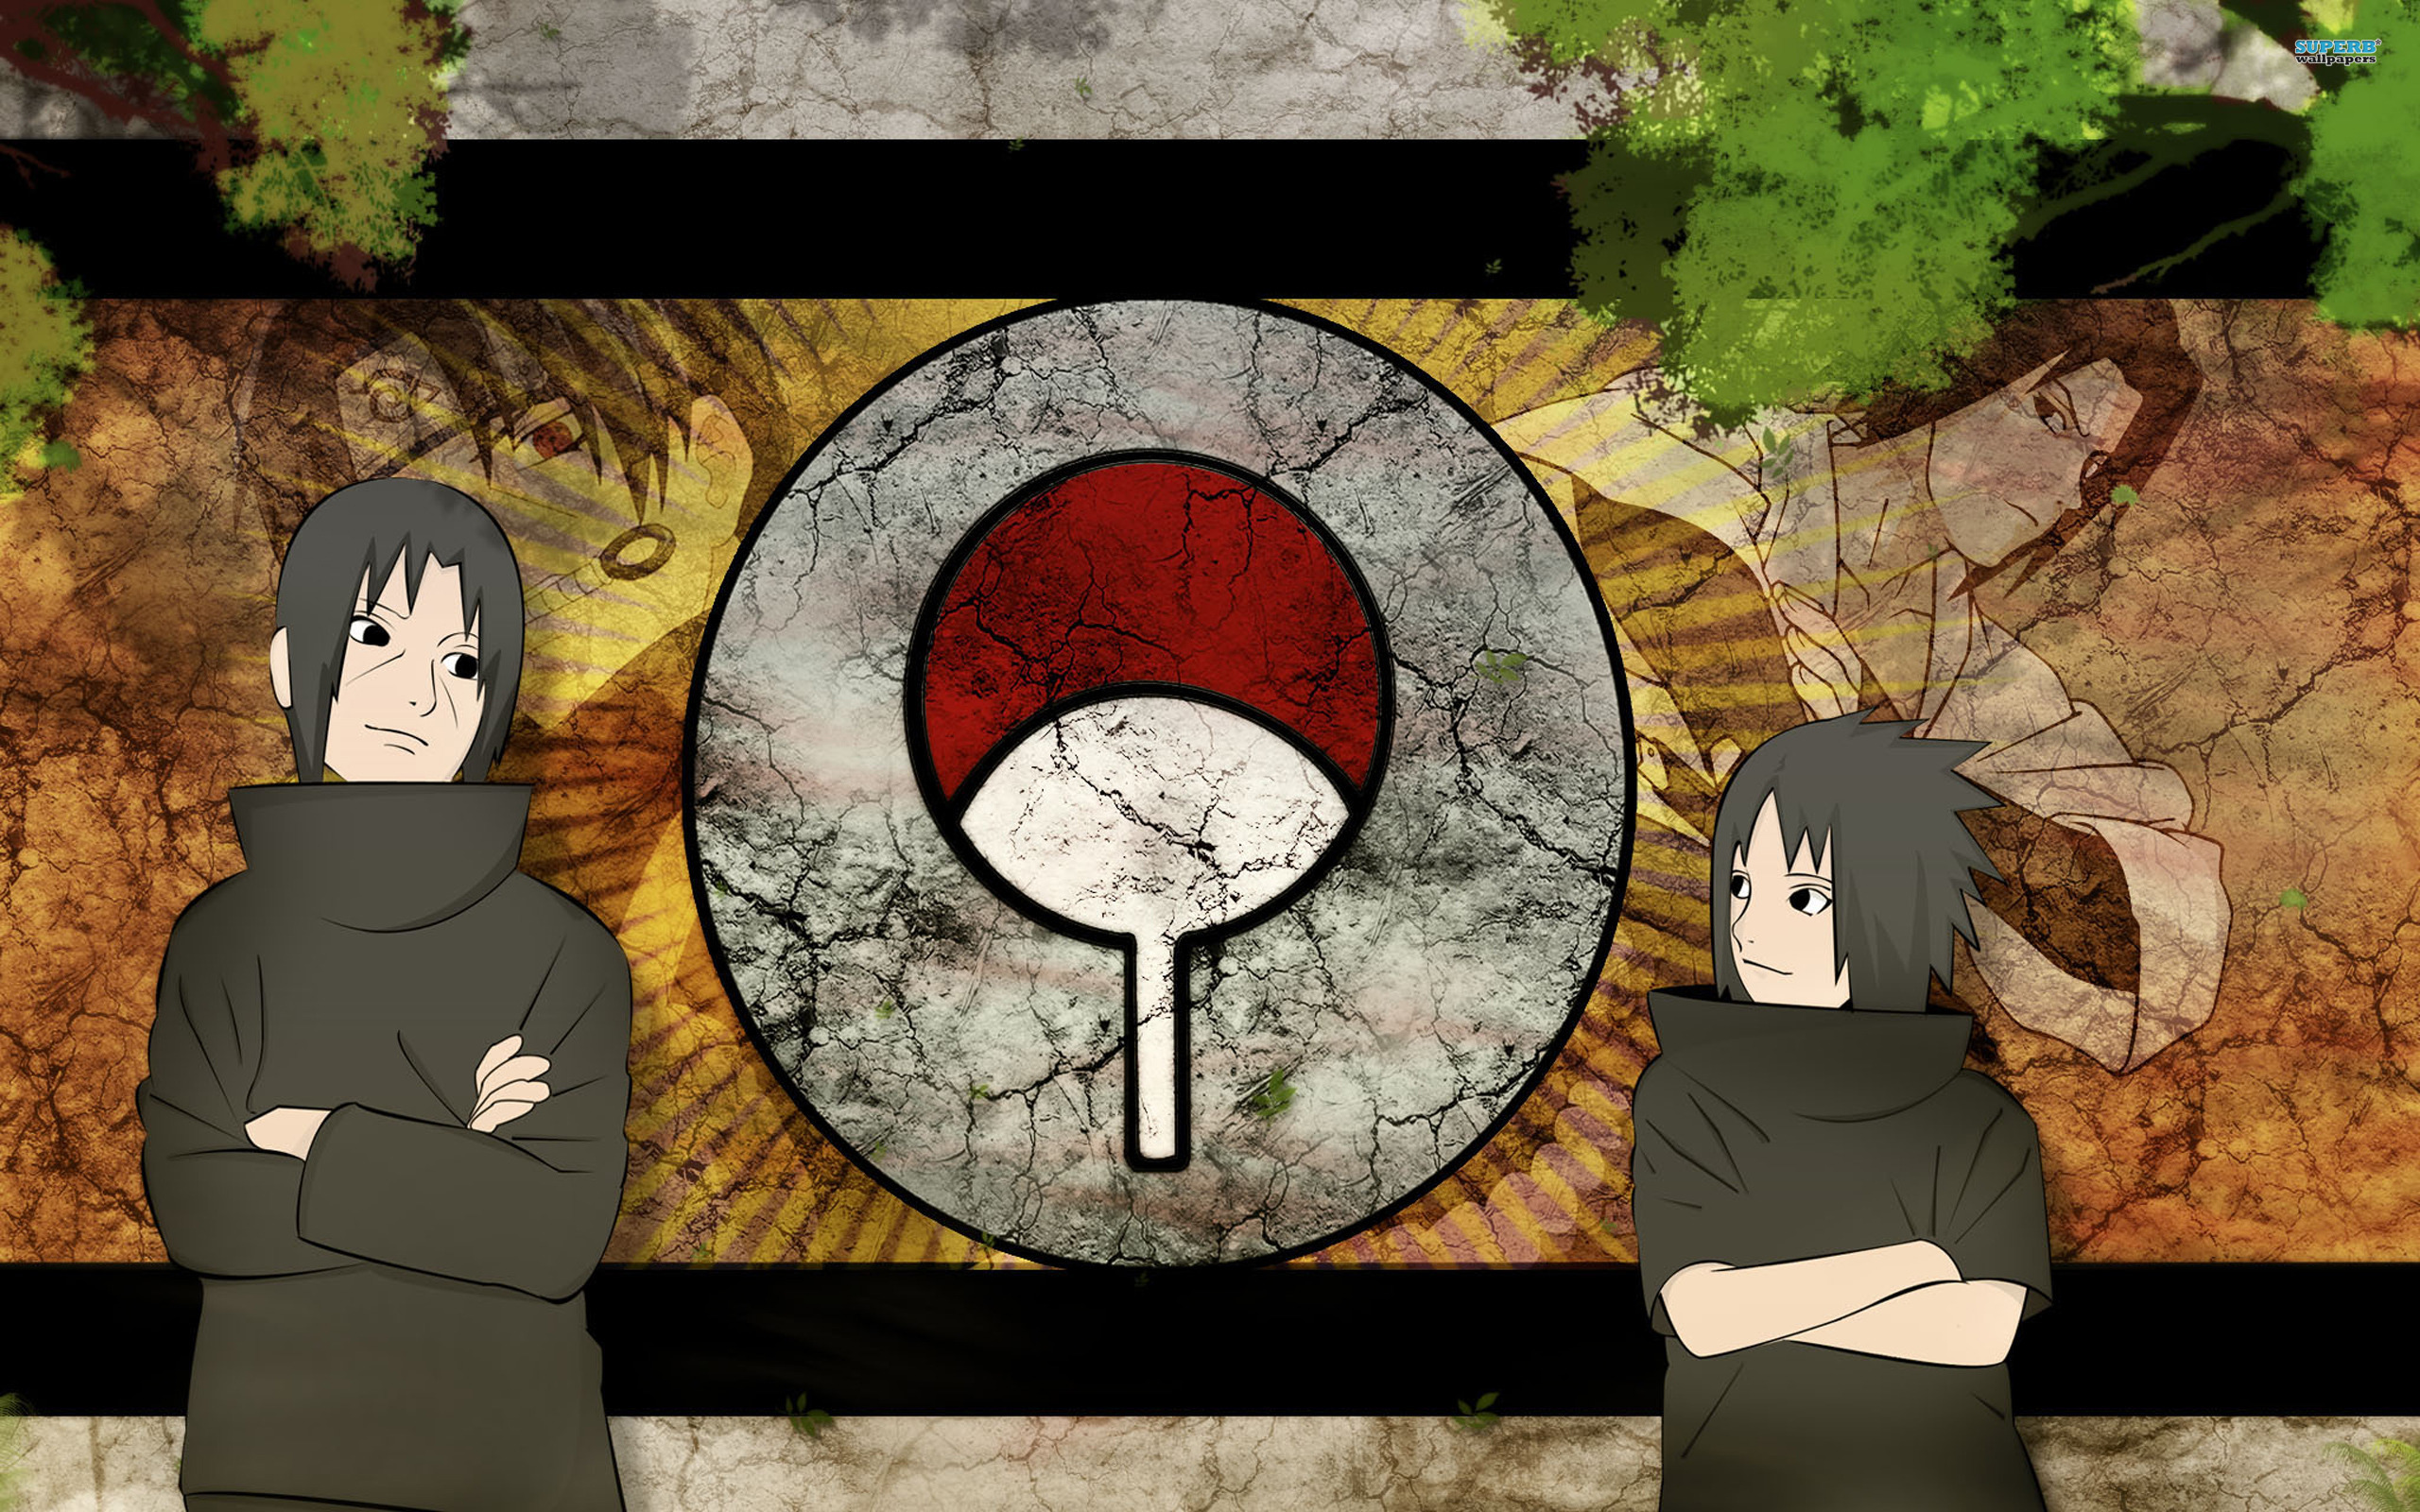 A45 Naruto -itachi-uchiha-sasuke-uchiha anime HD Desktop background images pictures wallpapers downloads